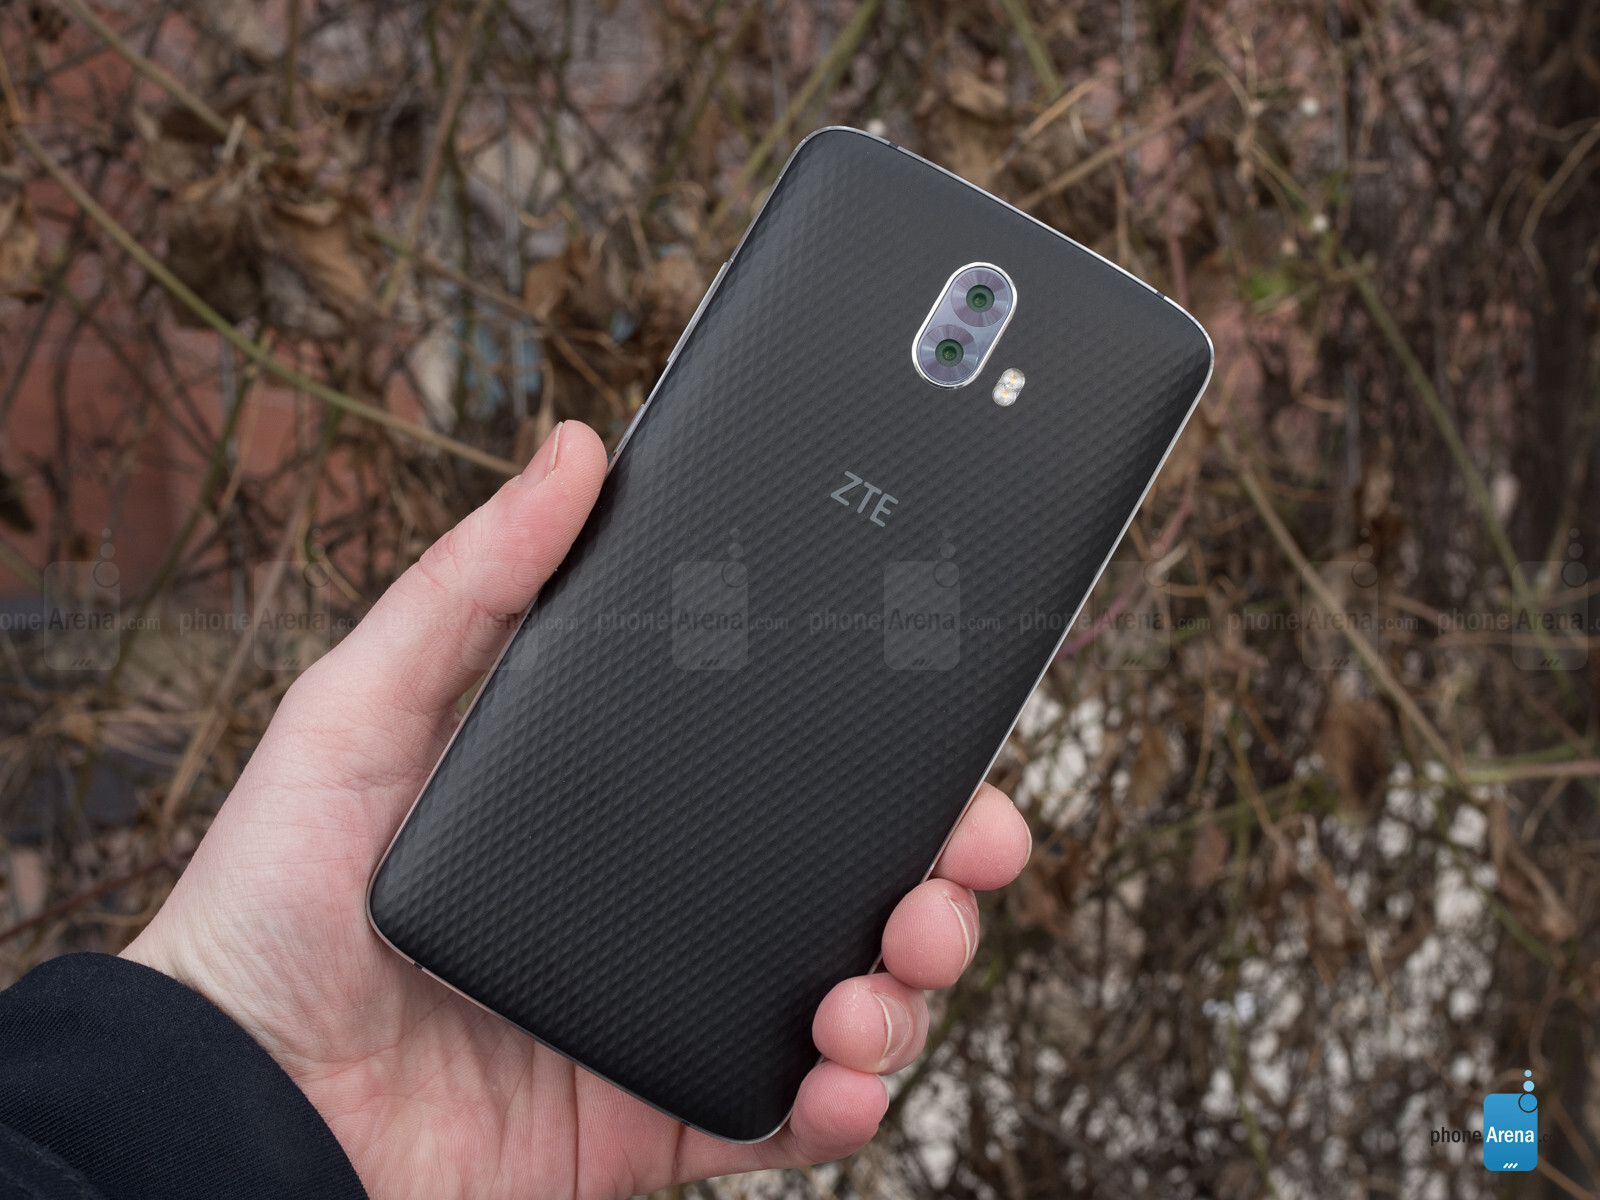 zte blade v8 pro review asking flagshirices for